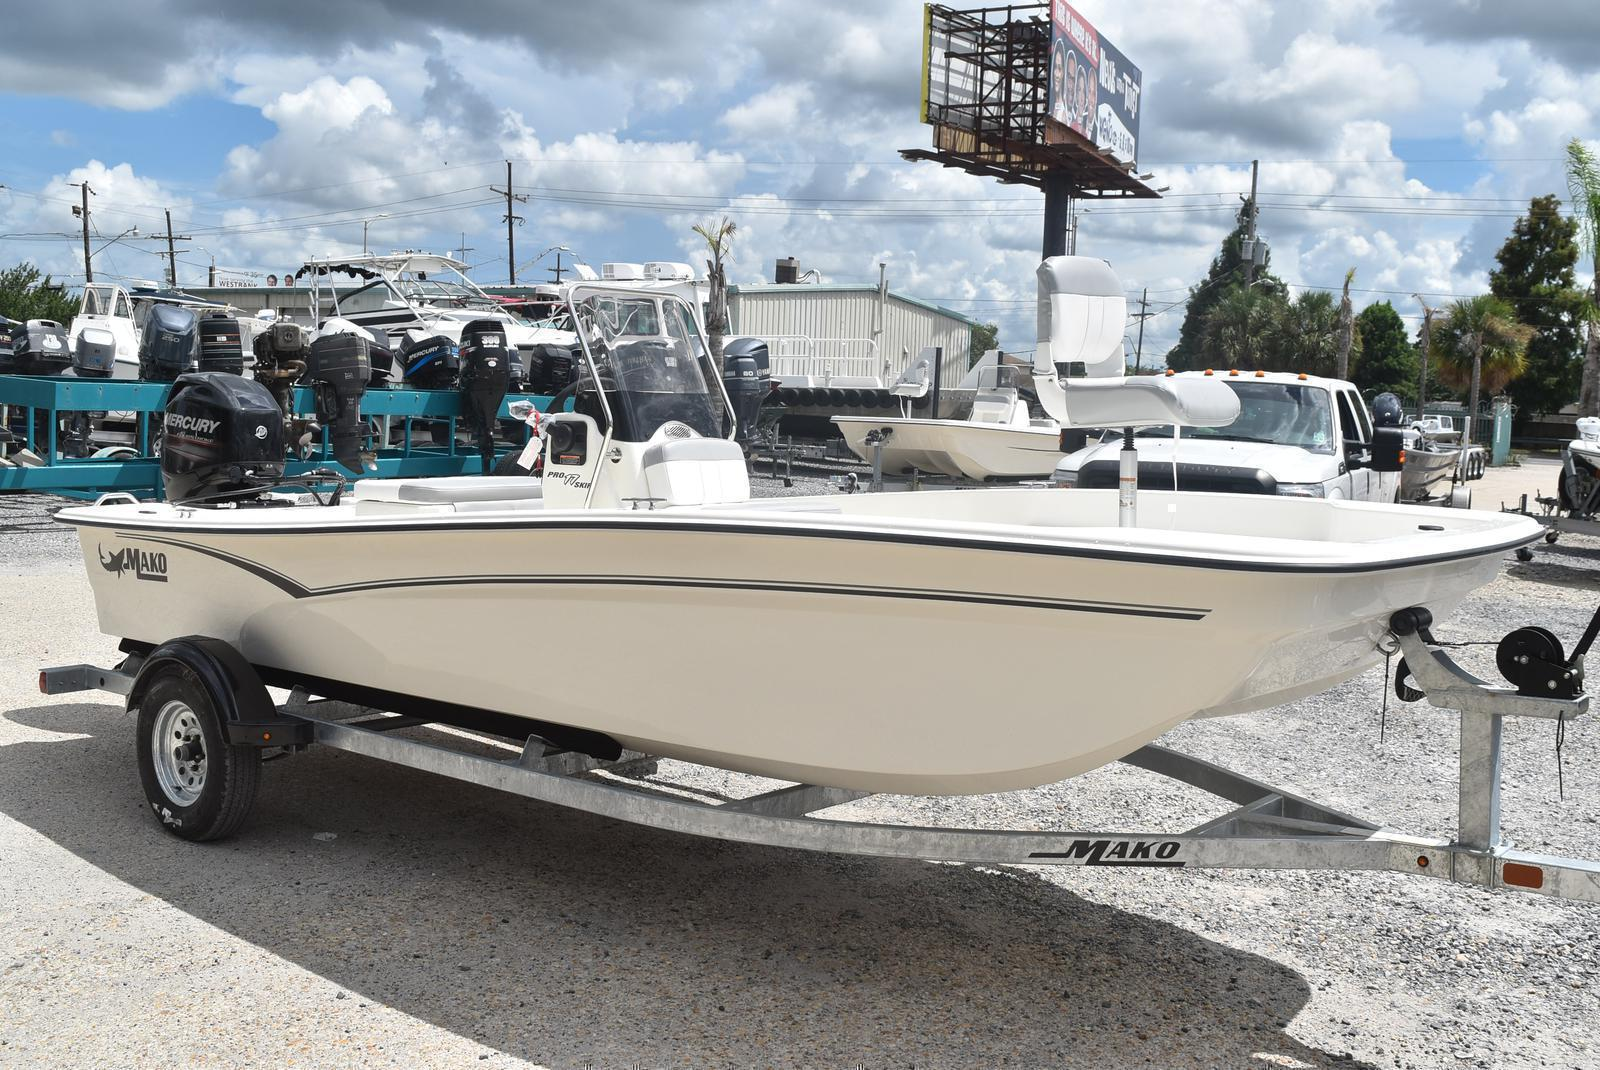 2020 Mako boat for sale, model of the boat is Pro Skiff 17, 75 ELPT & Image # 656 of 702